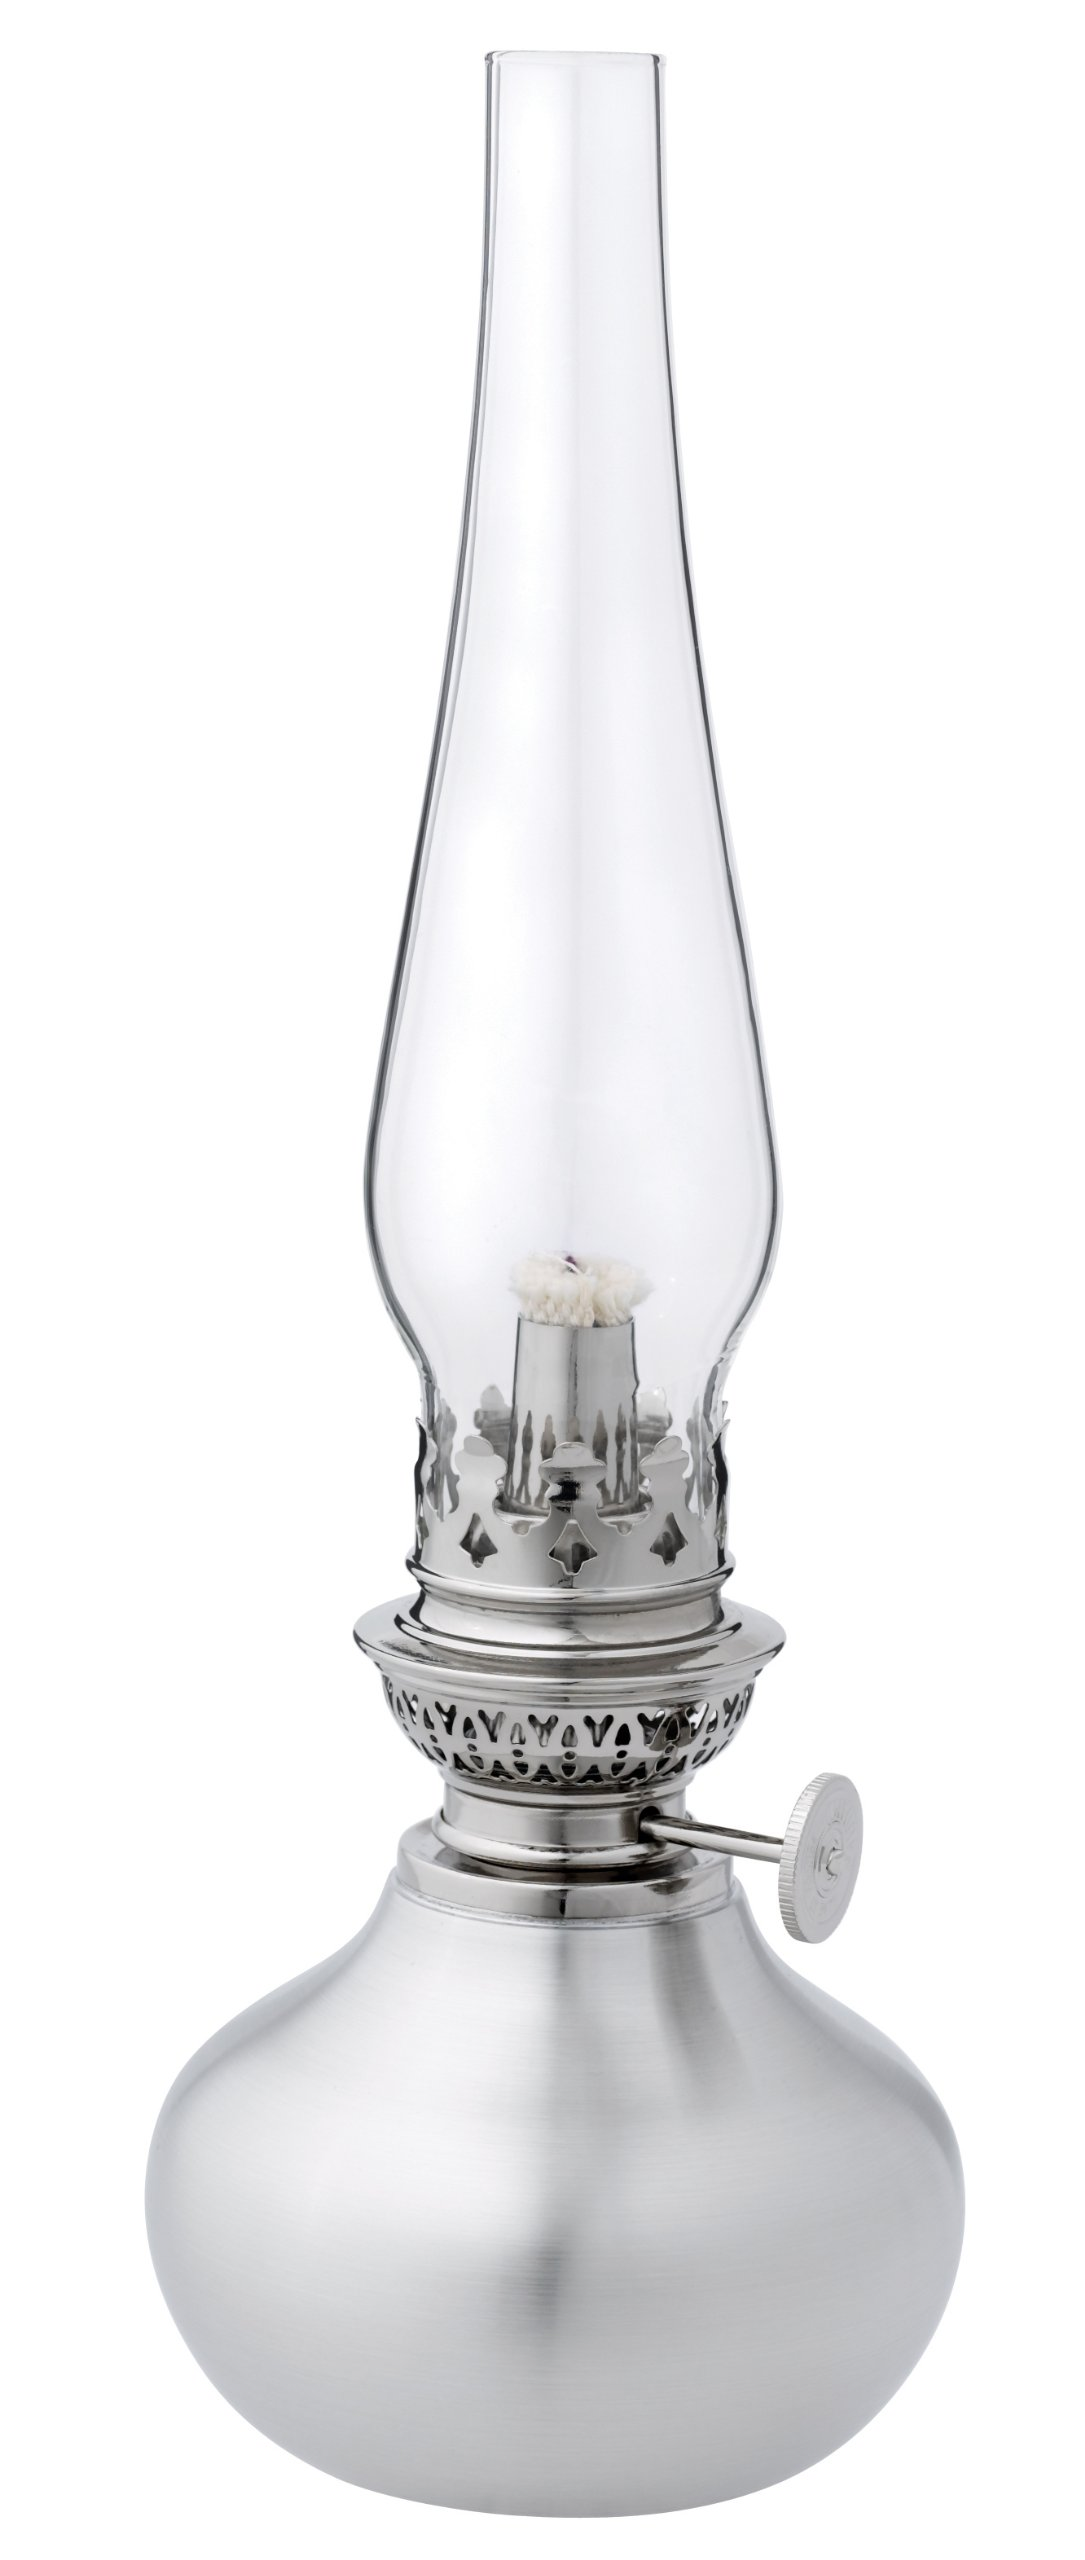 Danforth Pewter Shallot Oil Lamp with 7'' Globe by Danforth